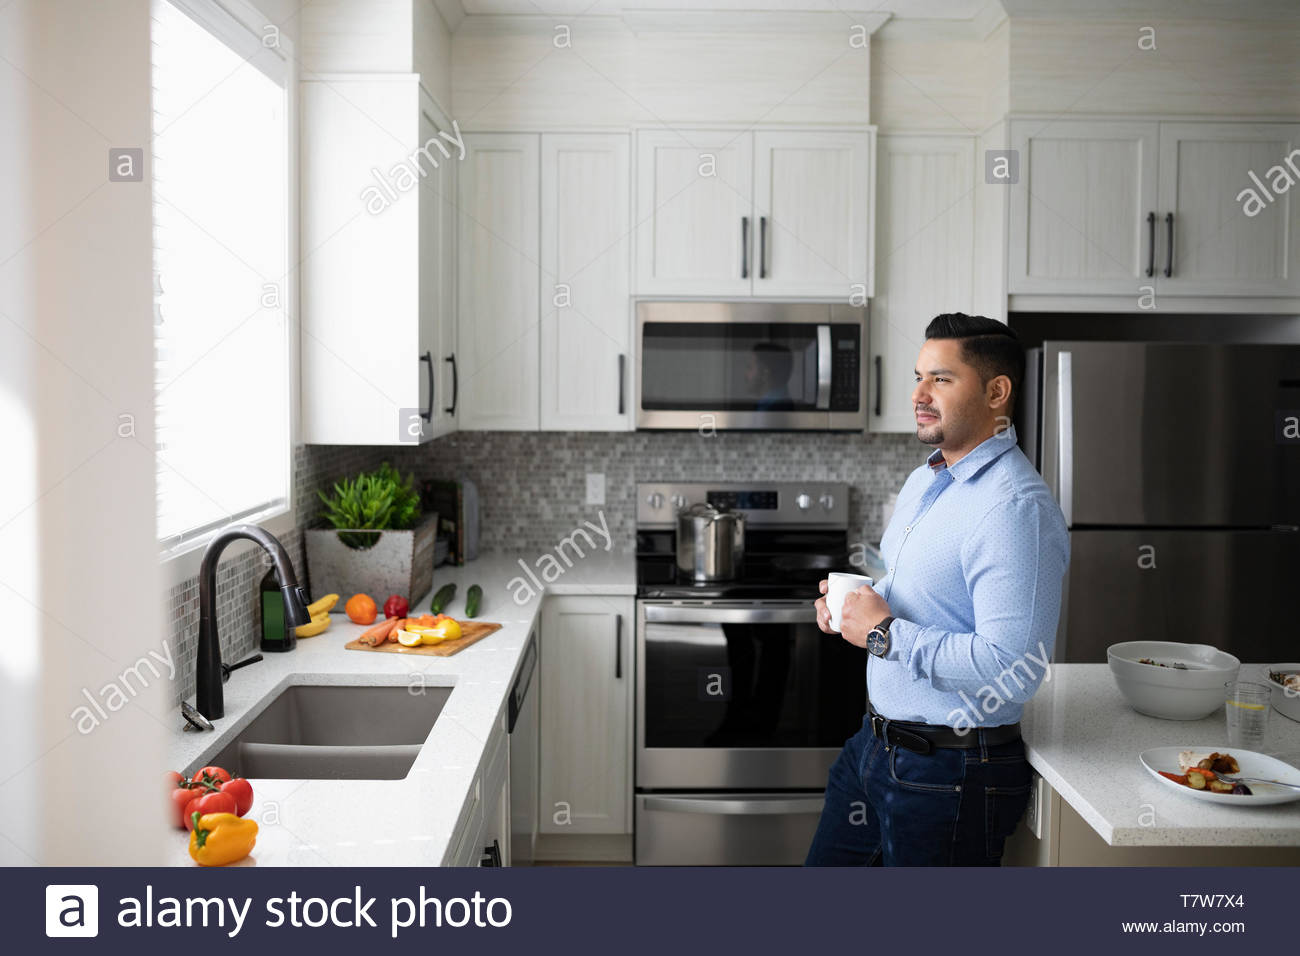 Thoughtful man drinking coffee and looking out kitchen window - Stock Image